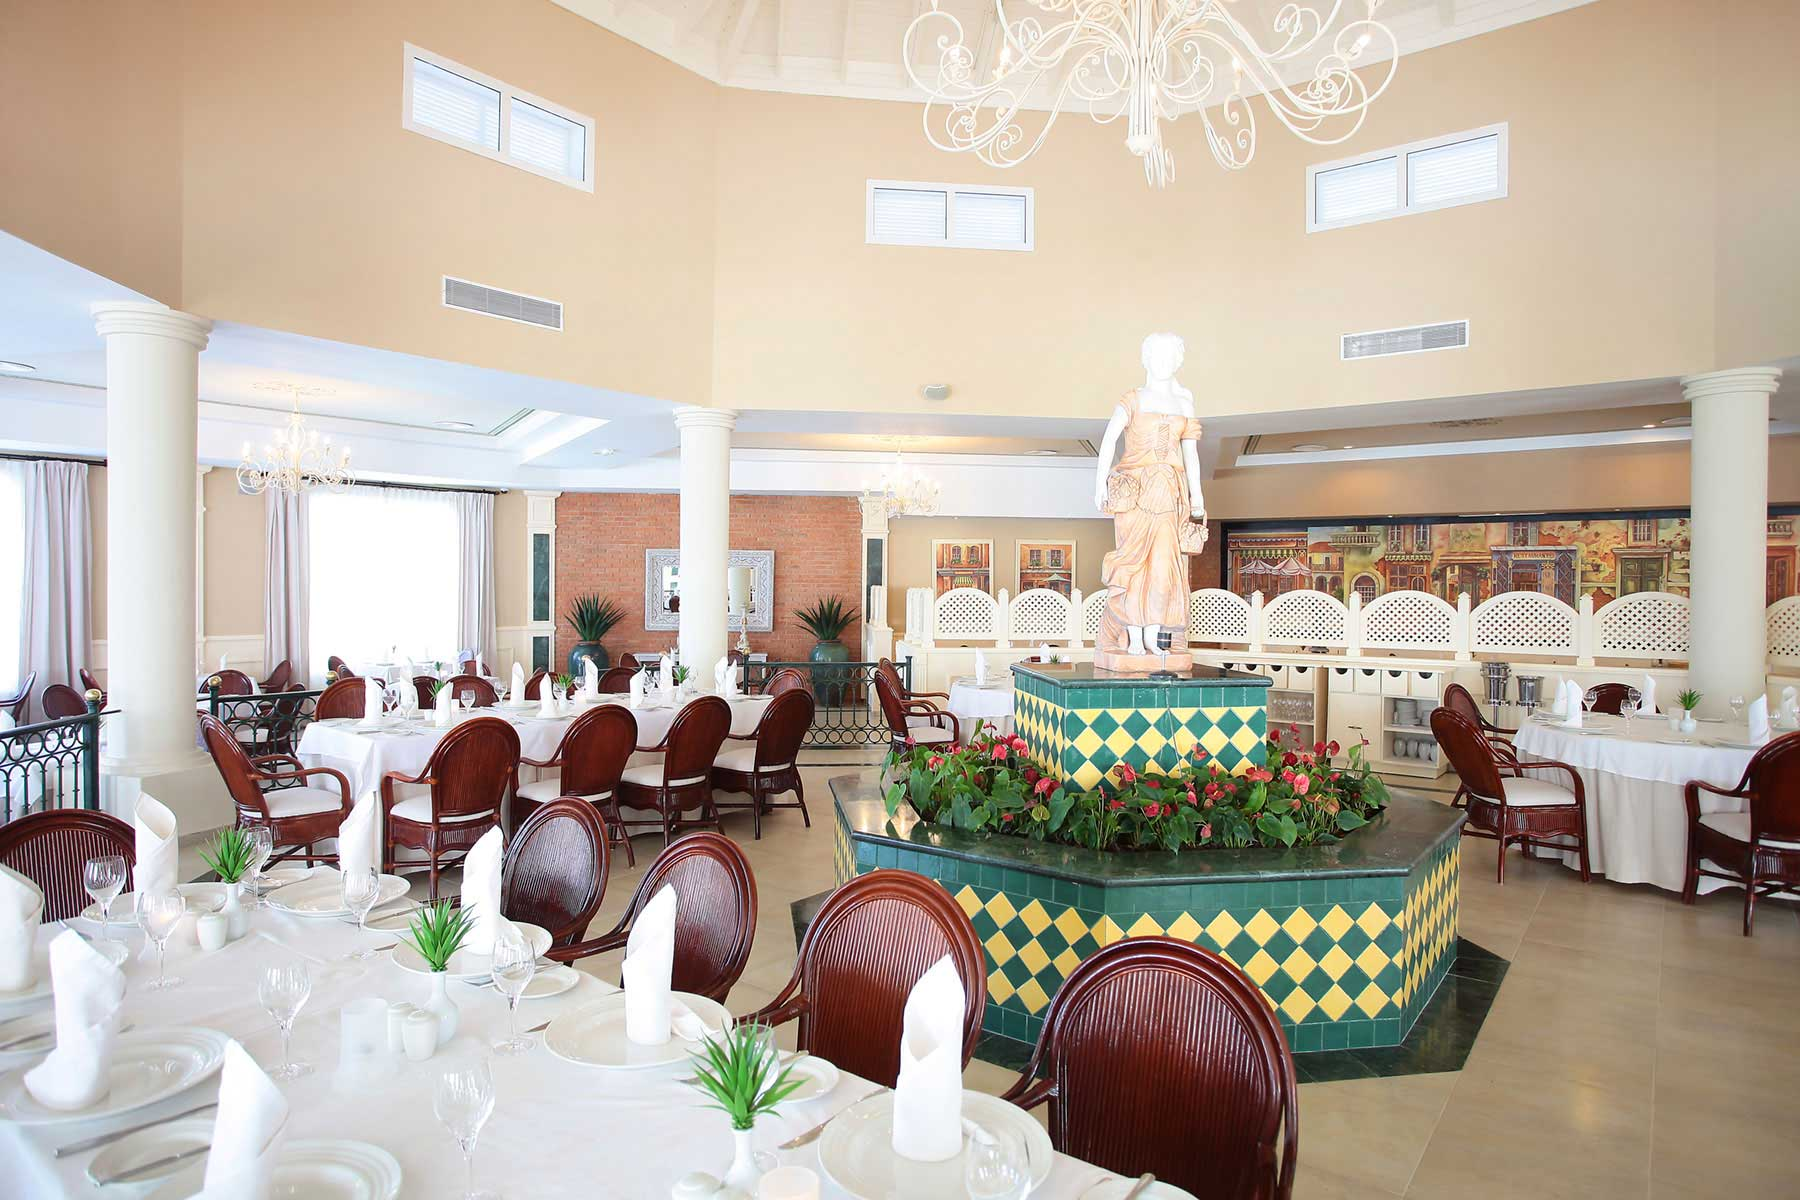 Luxury Bahia Principe Ambar Green Punta Cana Resort Restaurants Bars